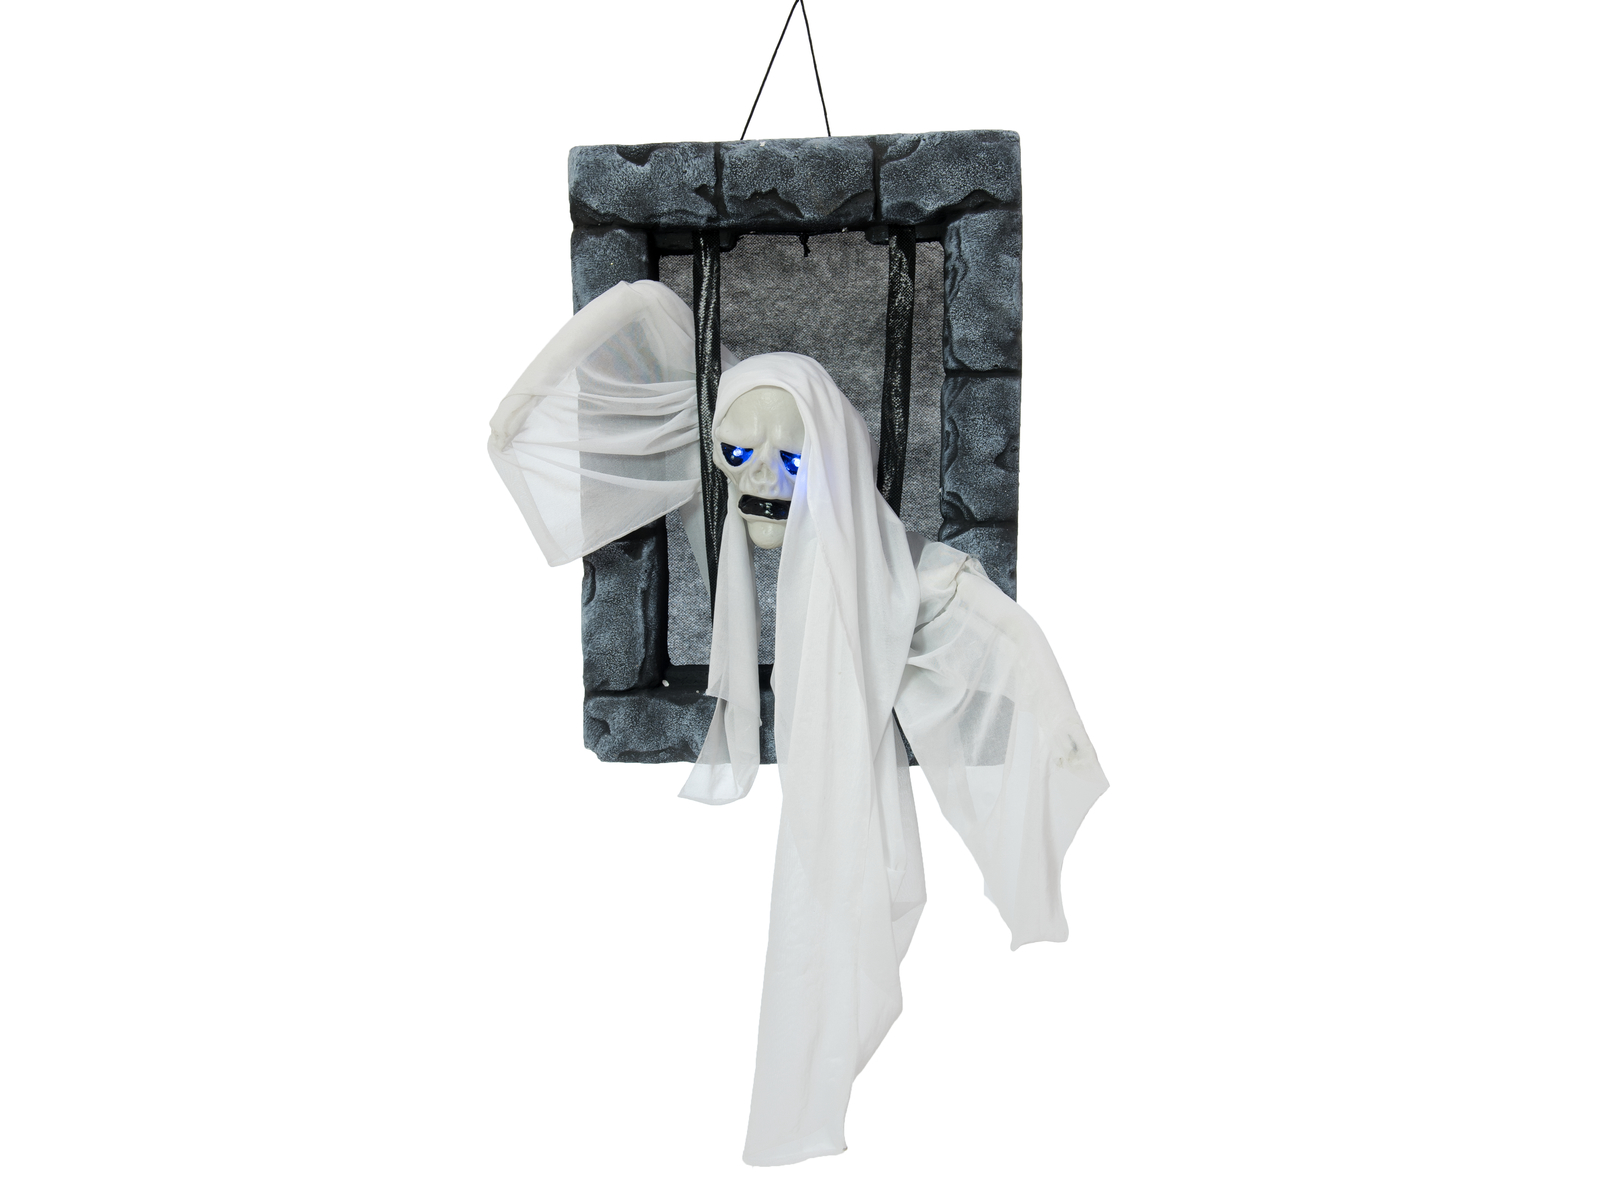 EUROPALMS Halloween Figura Ghost in Carcere, 46cm